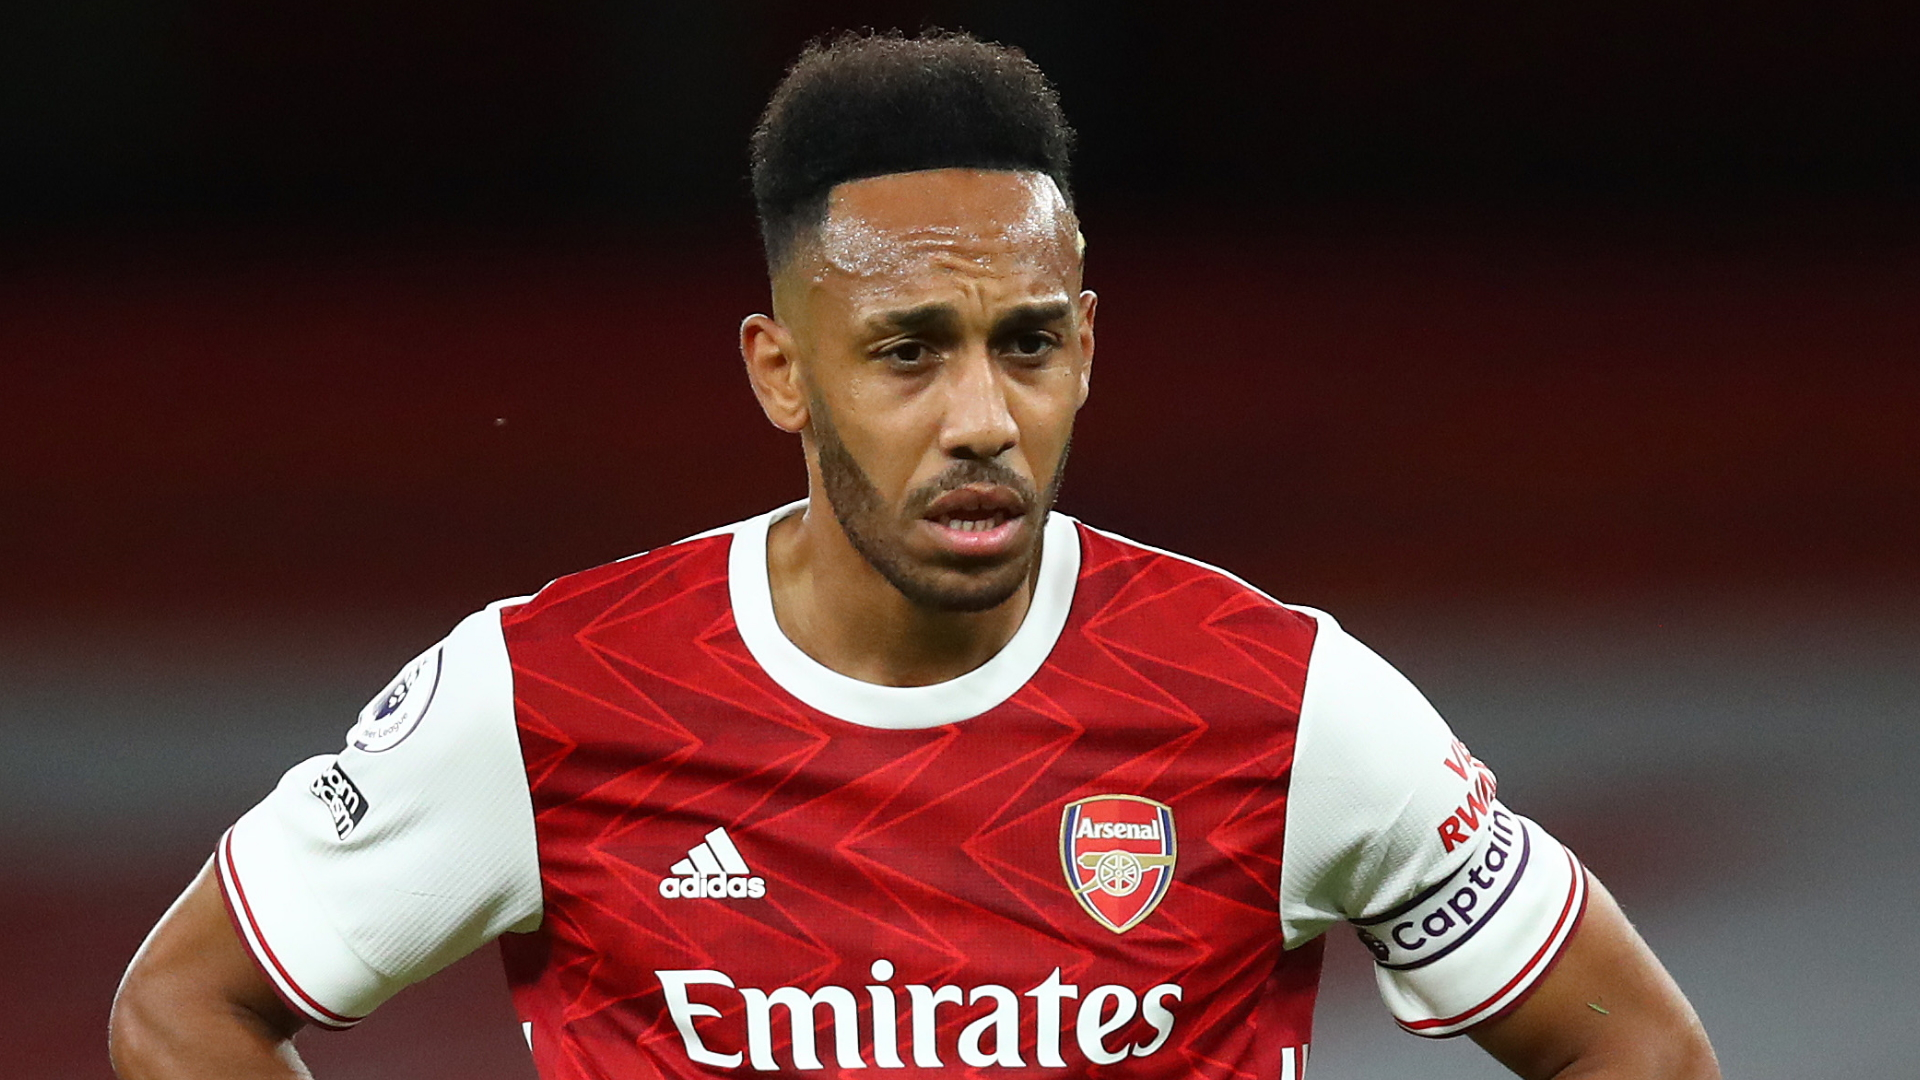 'Aubameyang hasn't been in form since signing contract' – Campbell confident Arsenal spark will return